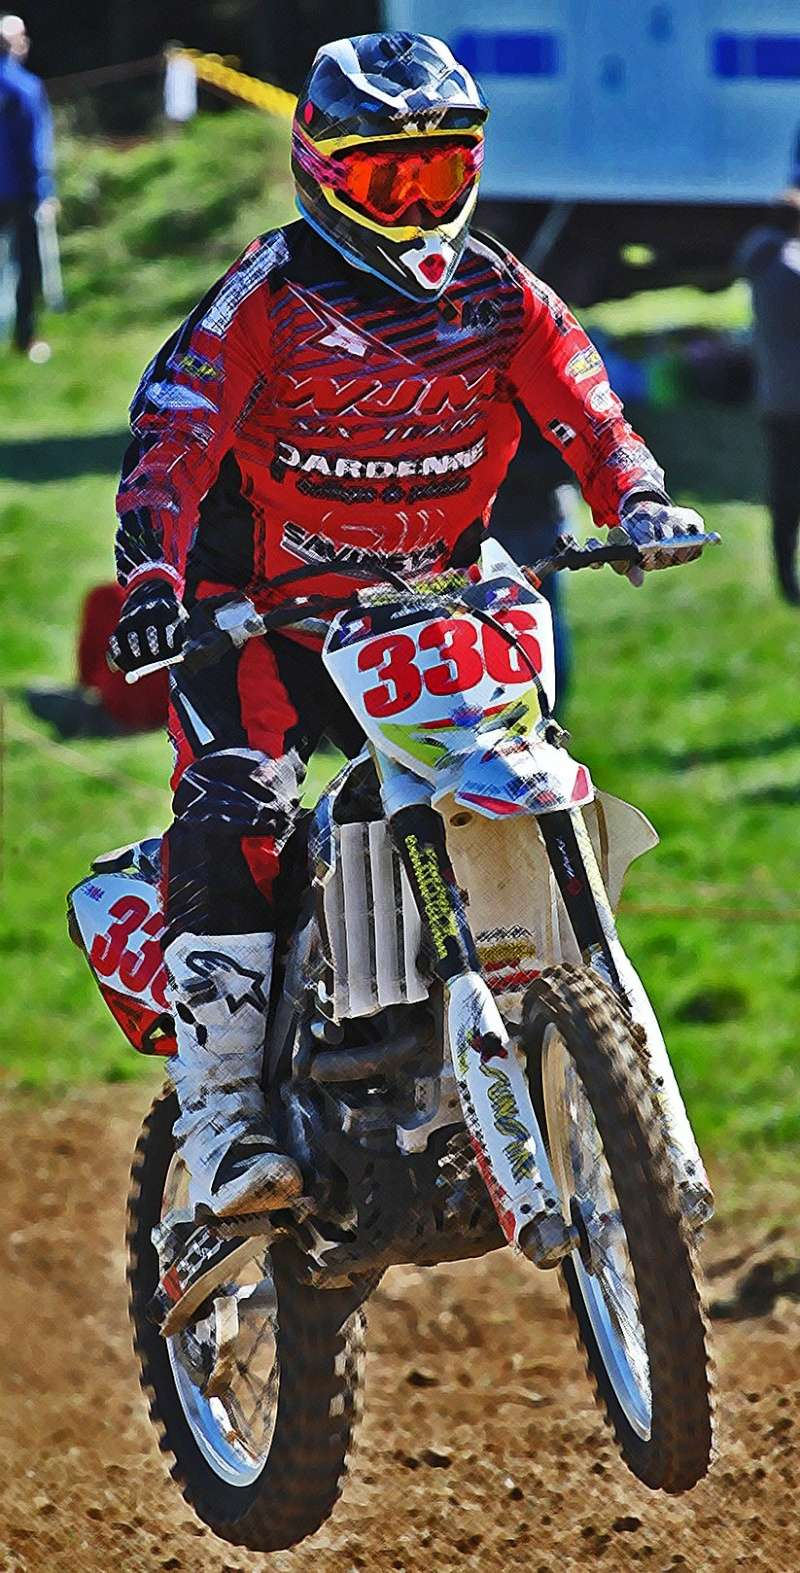 Motocross Moircy - 27 septembre 2015 ... - Page 12 1187